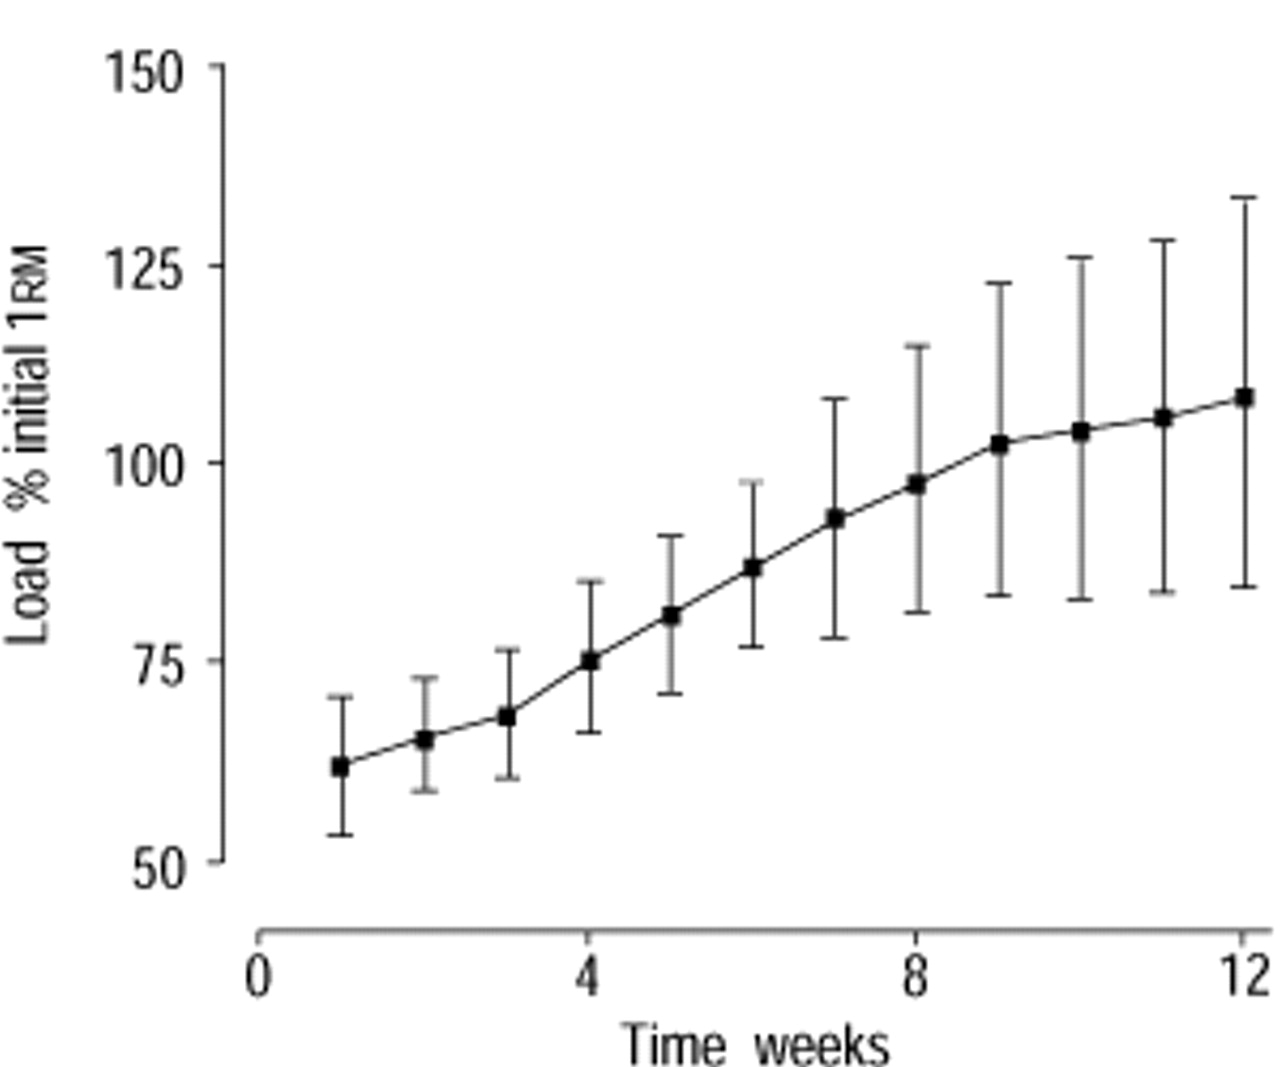 Resistance versus endurance training in patients with COPD